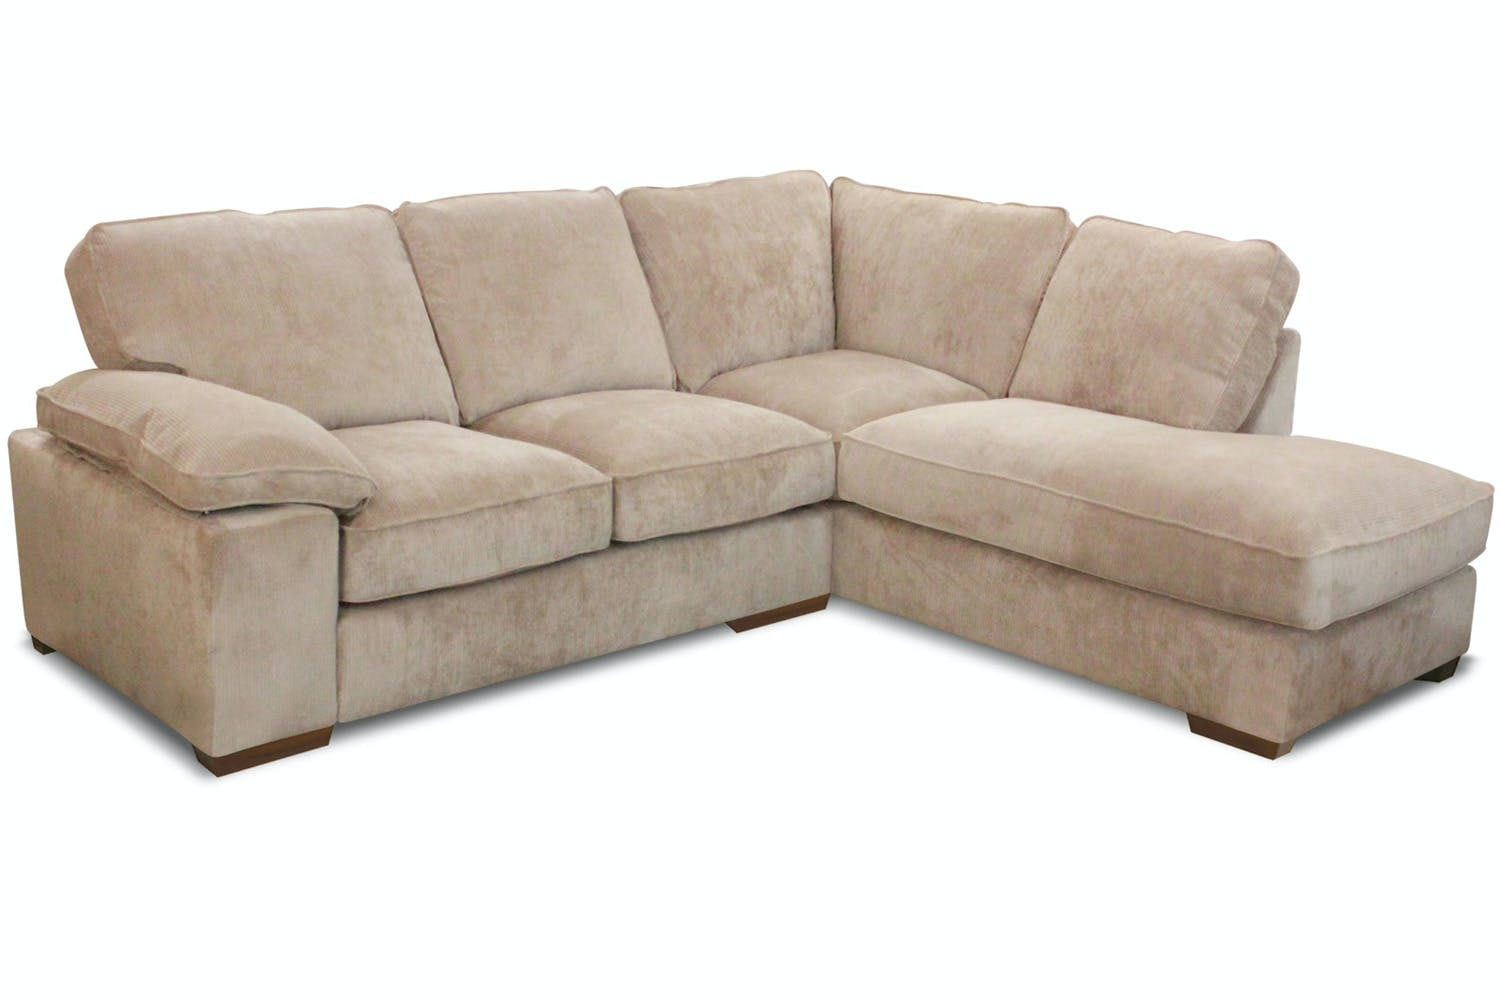 utah corner sofa with sofa bed harvey norman harvey